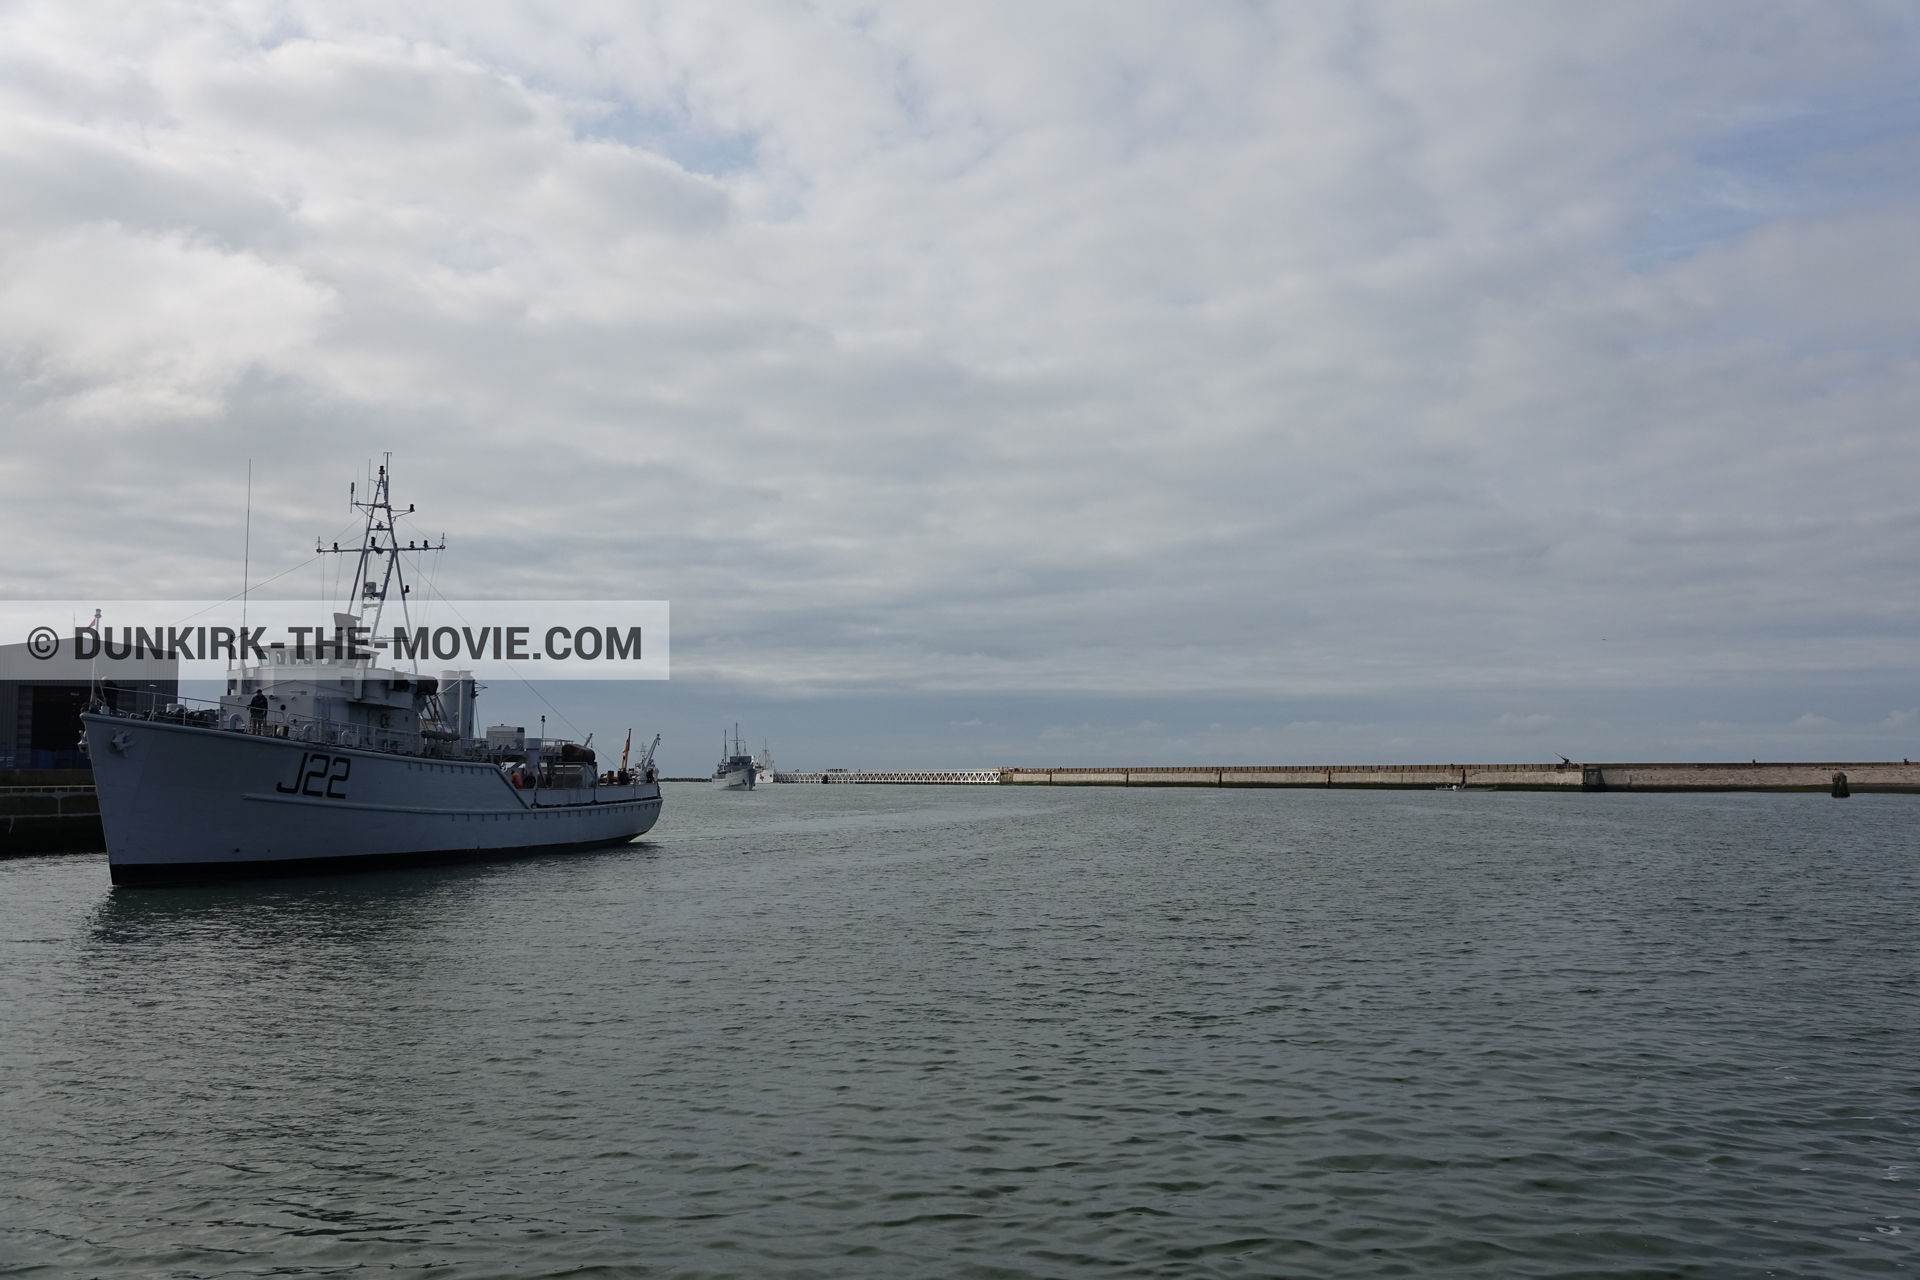 Picture with cloudy sky, J22 -Hr.Ms. Naaldwijk, EST pier, calm sea,  from behind the scene of the Dunkirk movie by Nolan